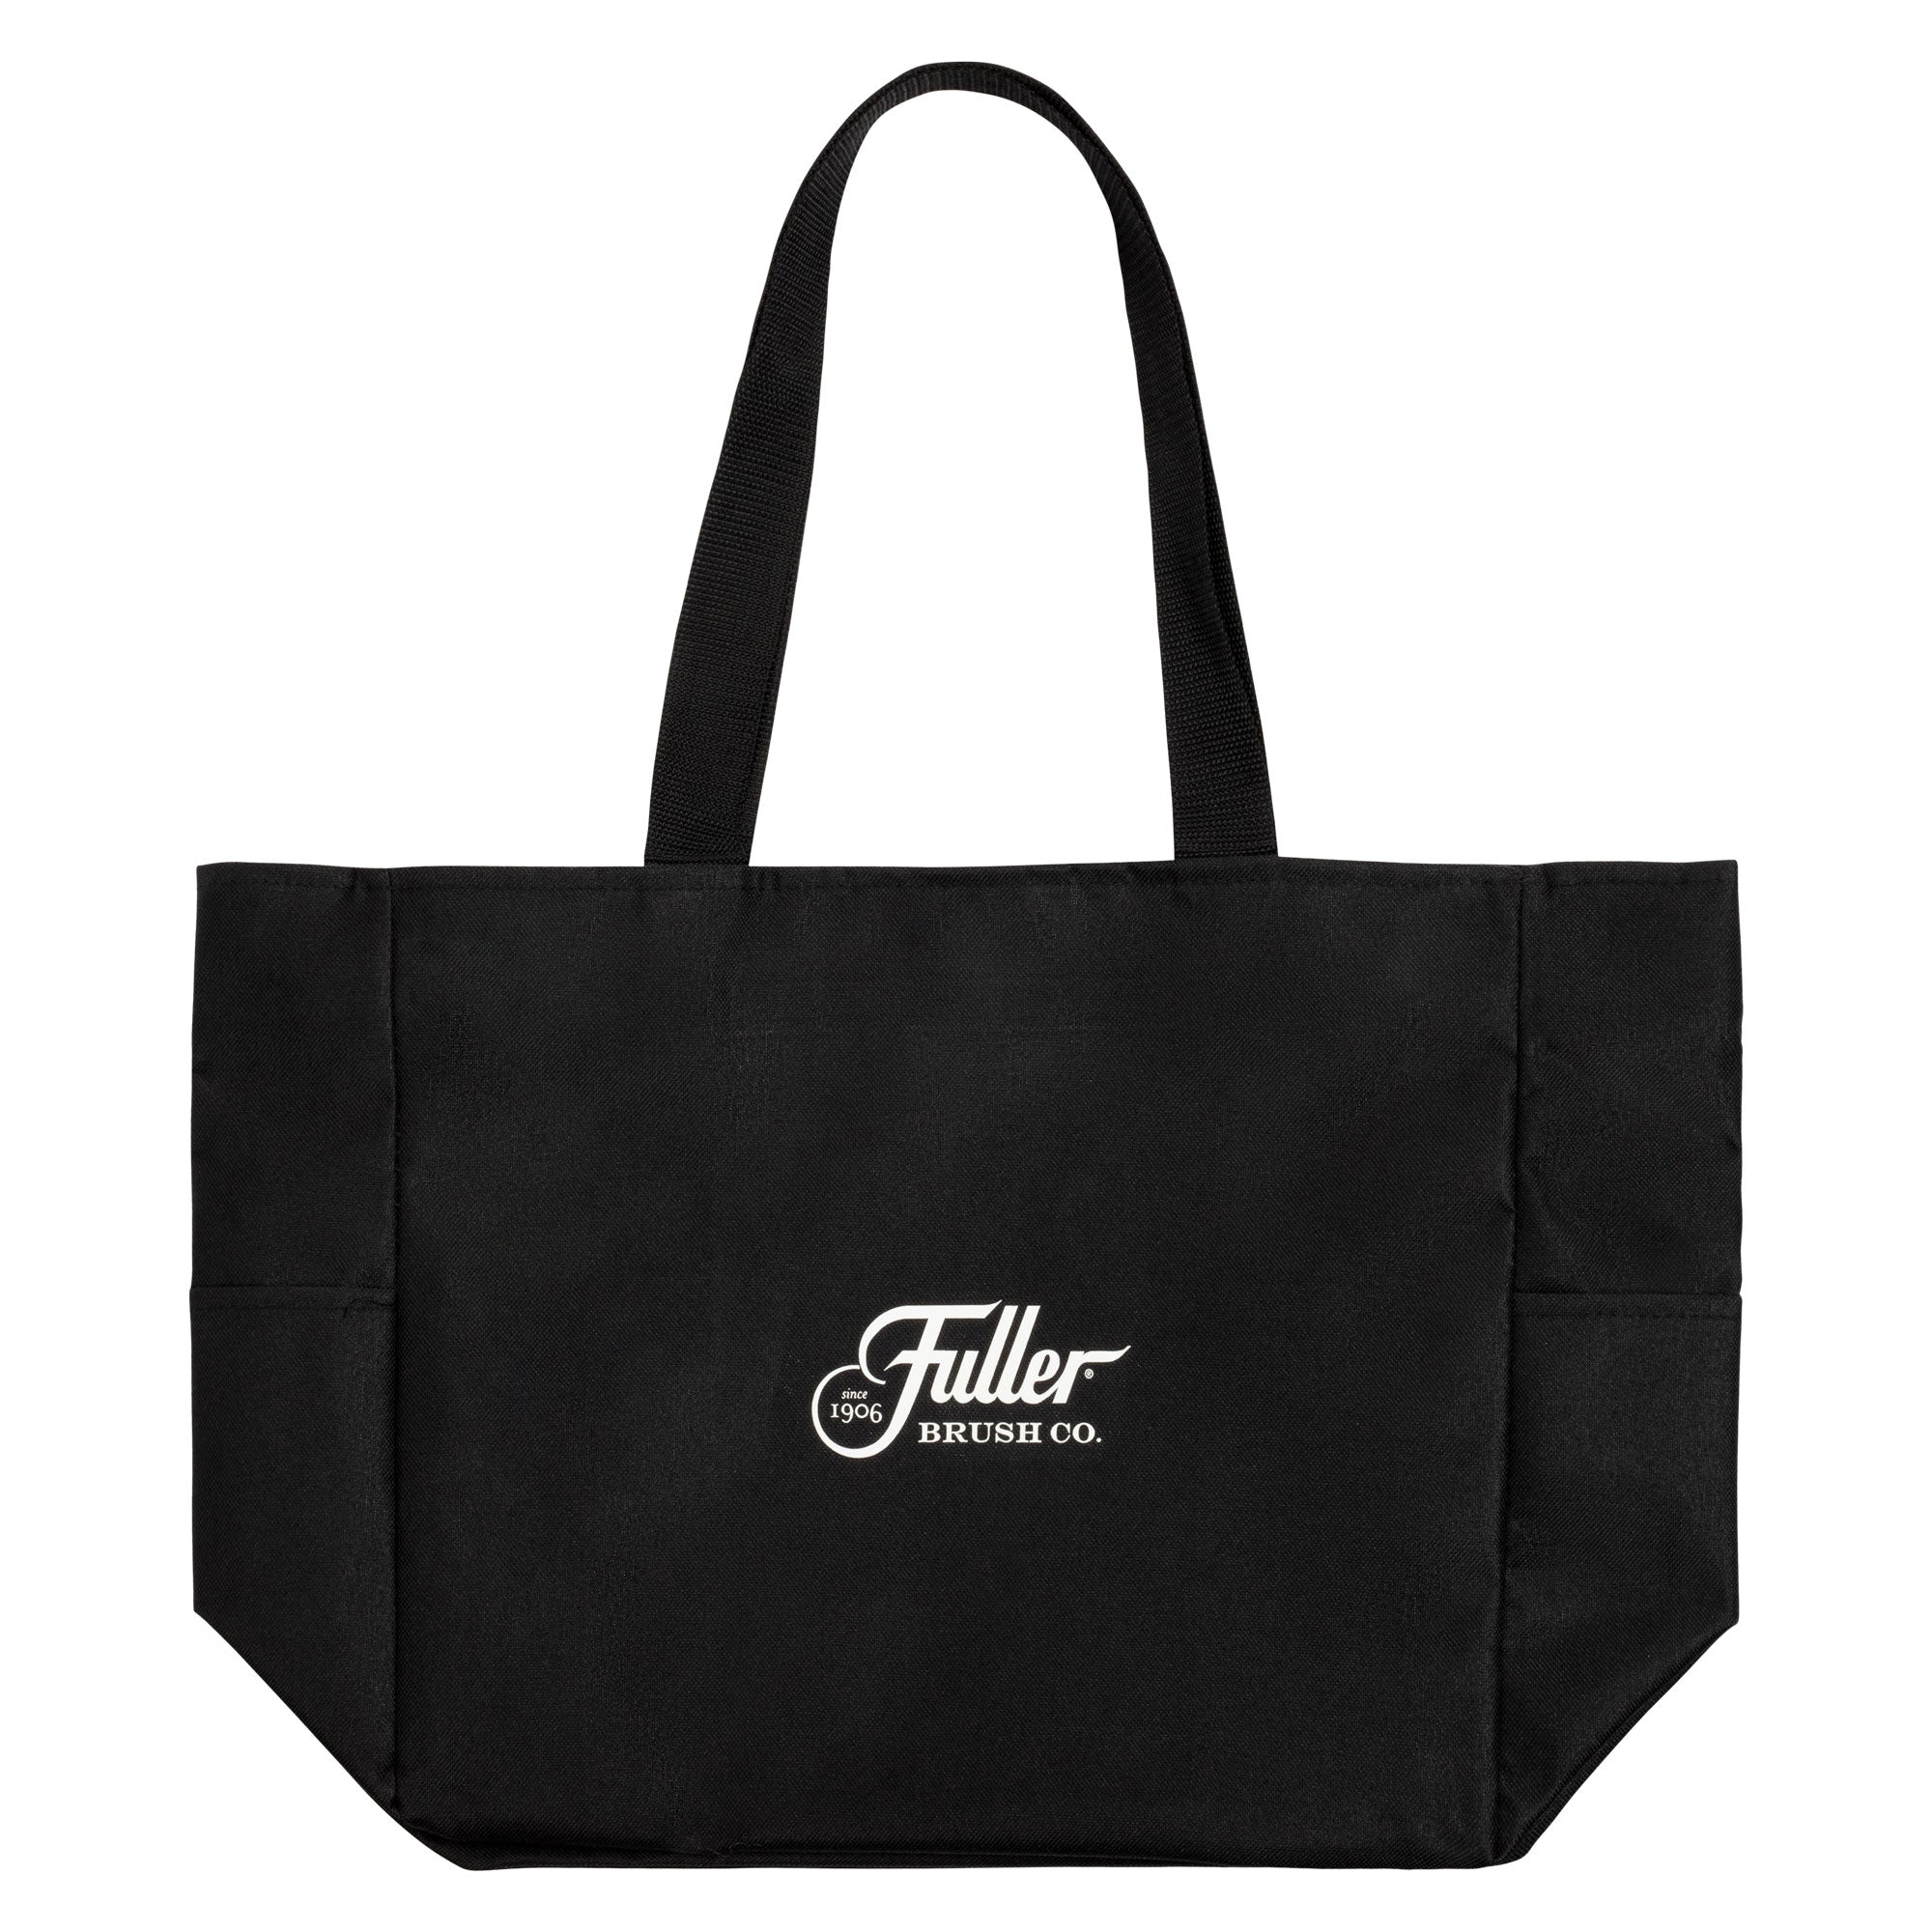 Polyester Zippered Bag with Fuller Brush & Stanley Logos